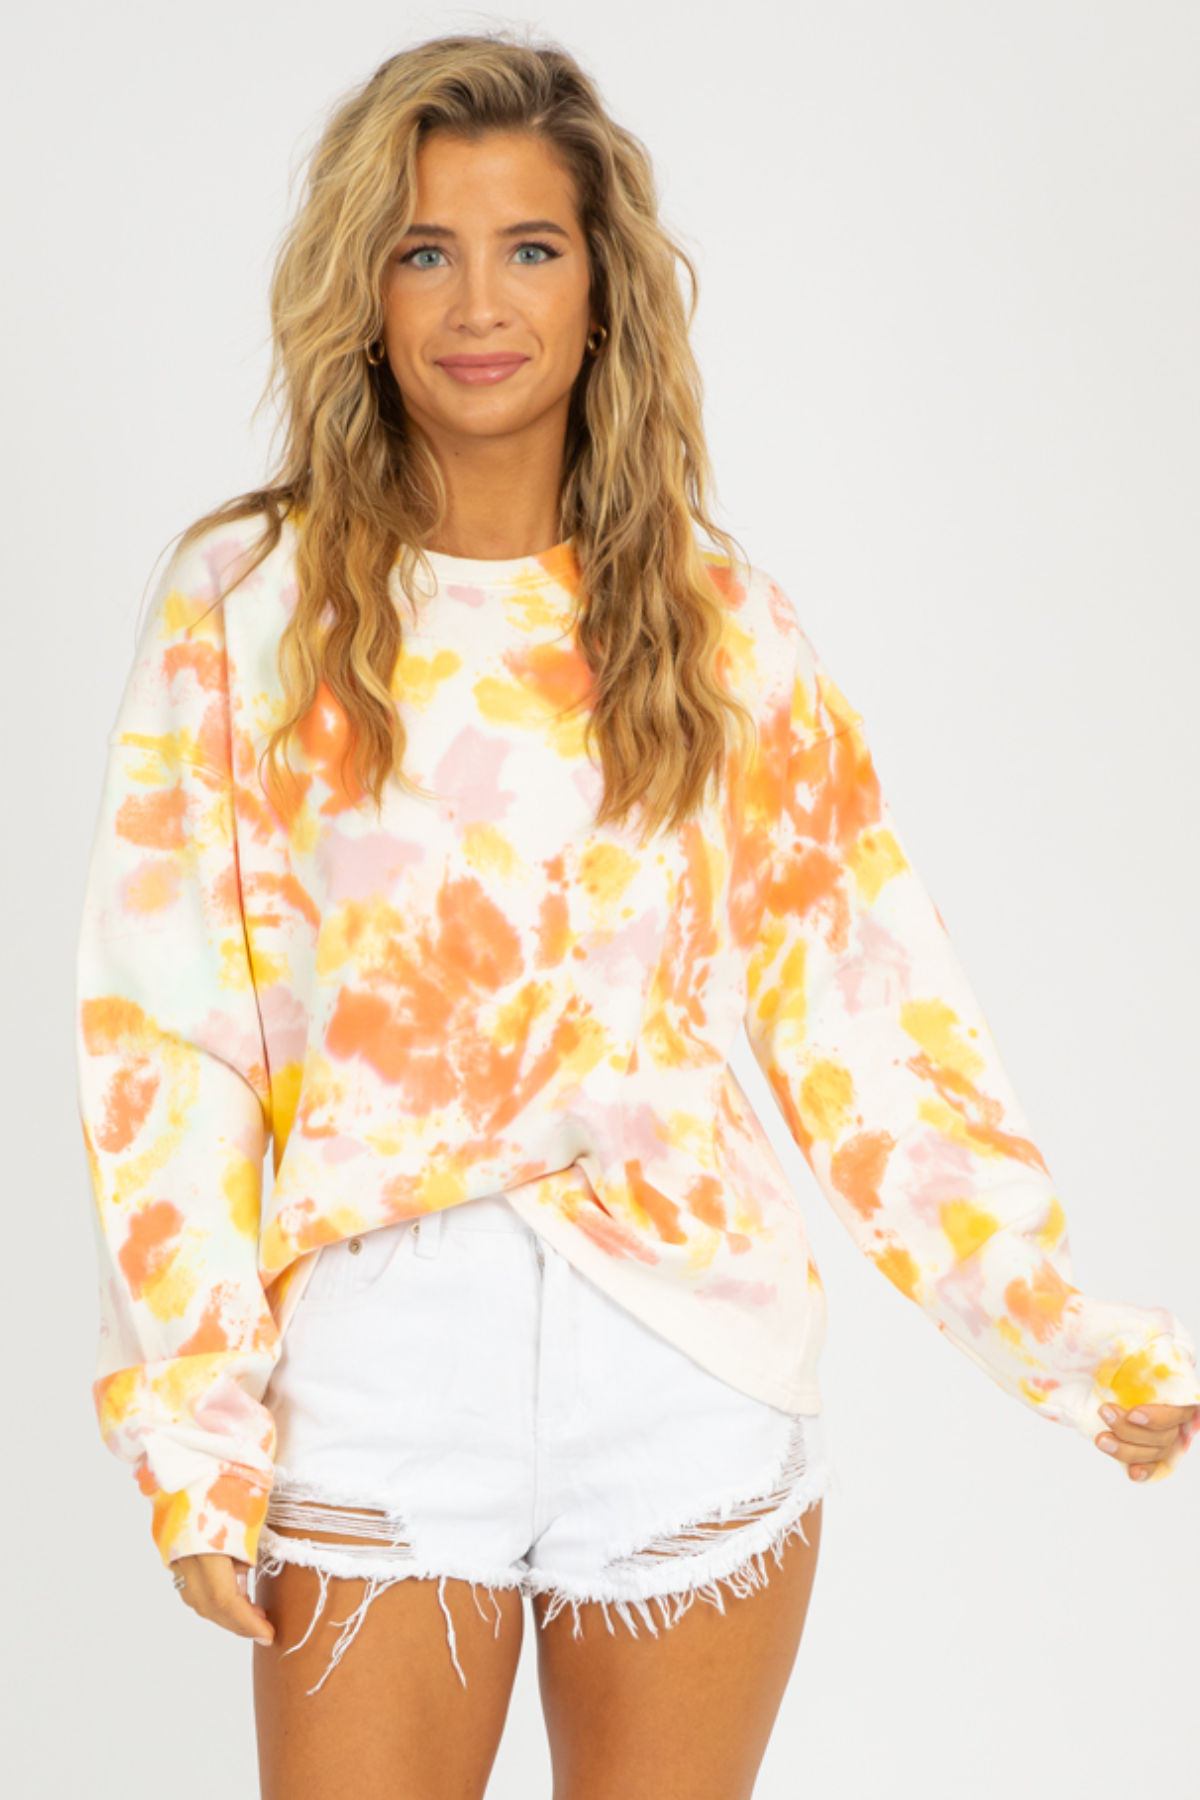 YELLOW + ORANGE TIE DYE SWEATSHIRT